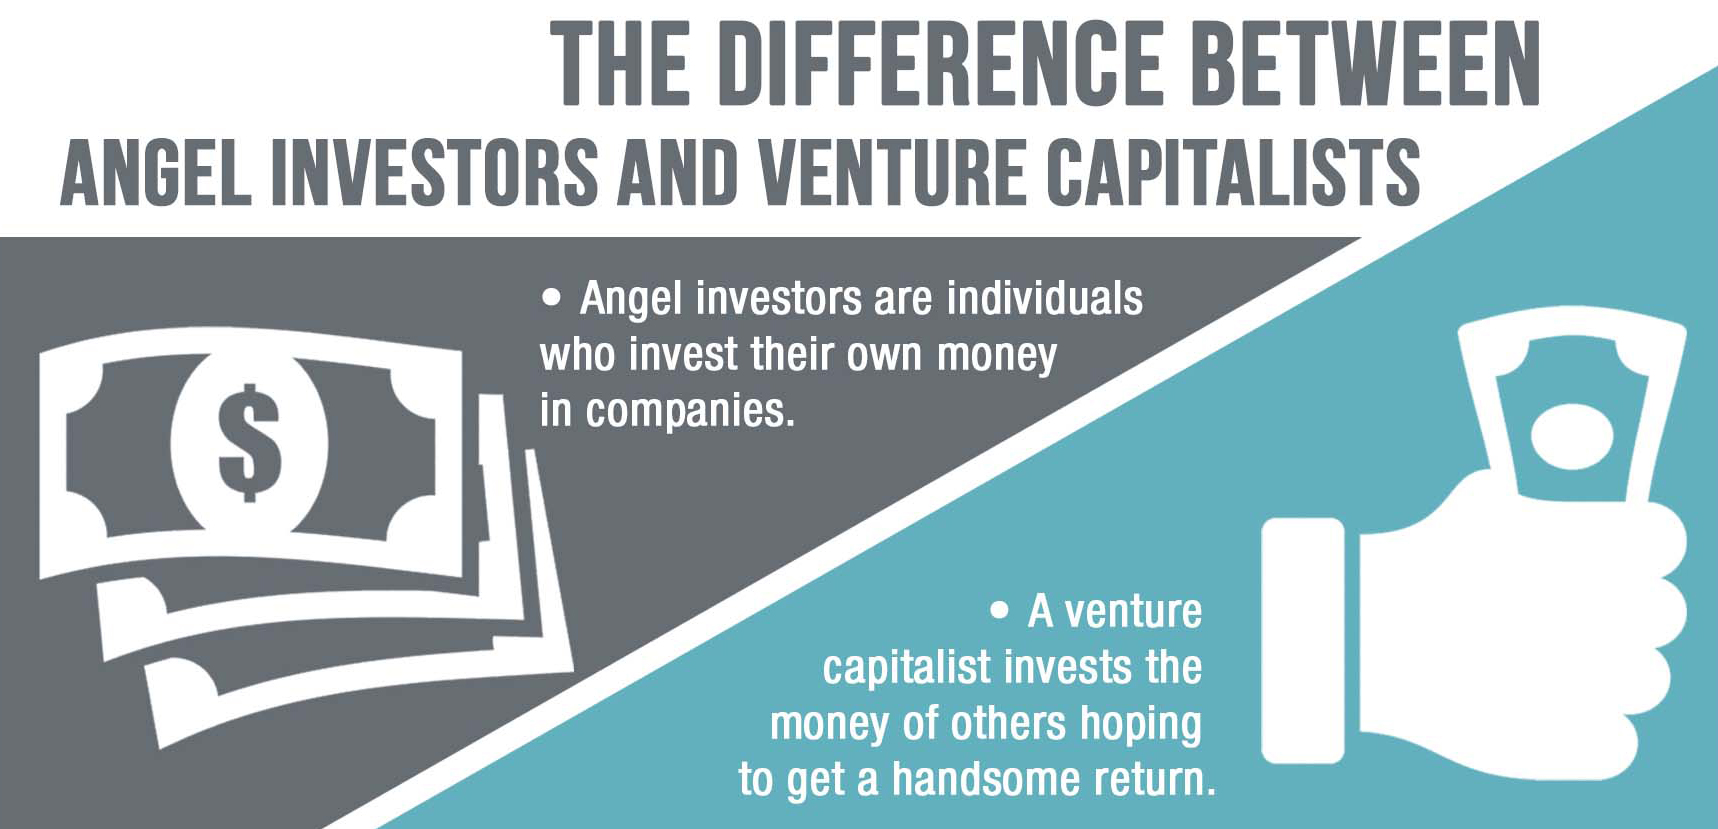 venture-capital-vs-angel-investors-whichis-right-for-you-differences